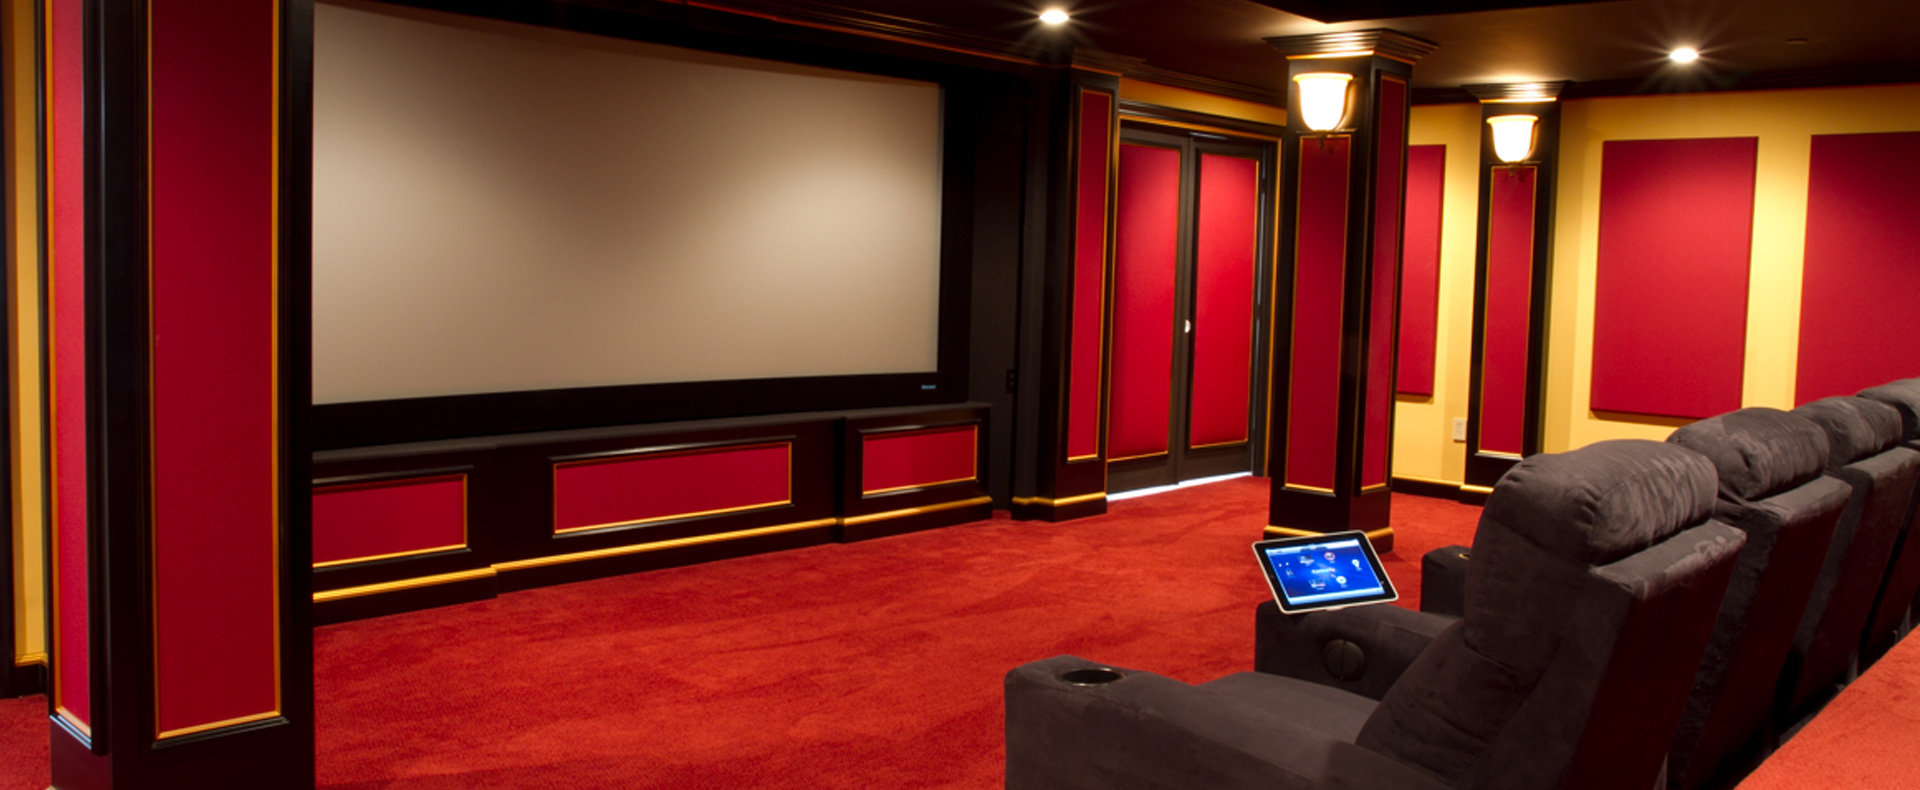 Home Theater Systems | Surround Sound U0026 Home Audio | Installation U0026 Design  Experts